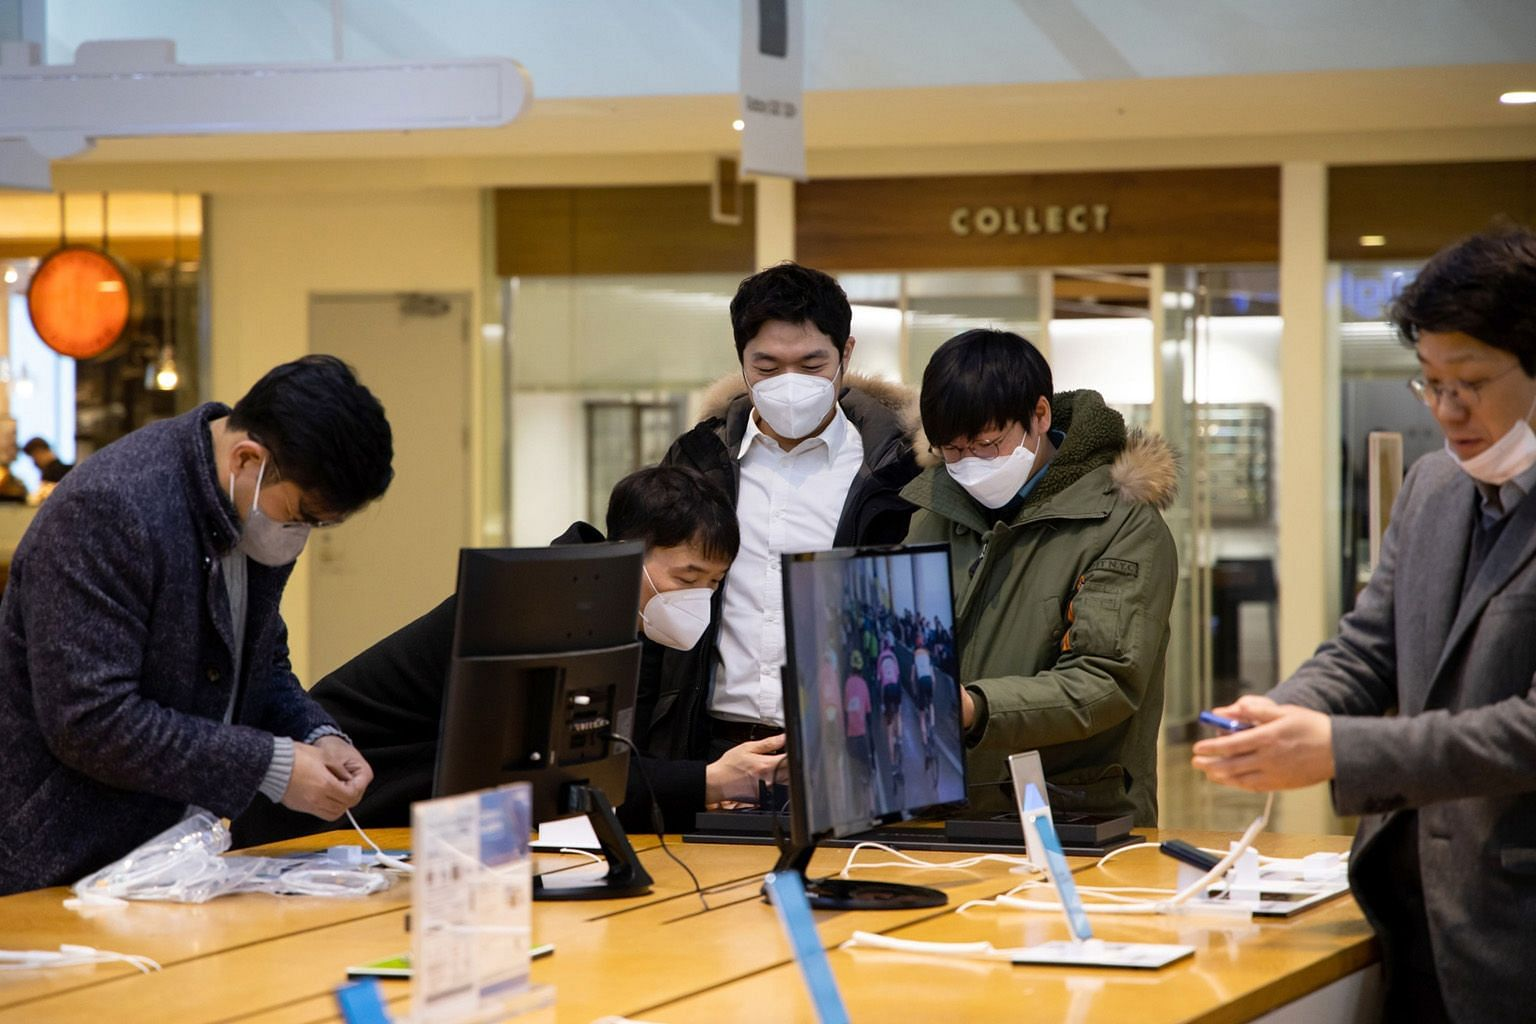 Customers trying out smartphones at Samsung's flagship store in Seoul in March. The coronavirus pandemic has hit sales of mobile devices across the board and experts warn that the rest of the year will be worse as the virus batters the global economy